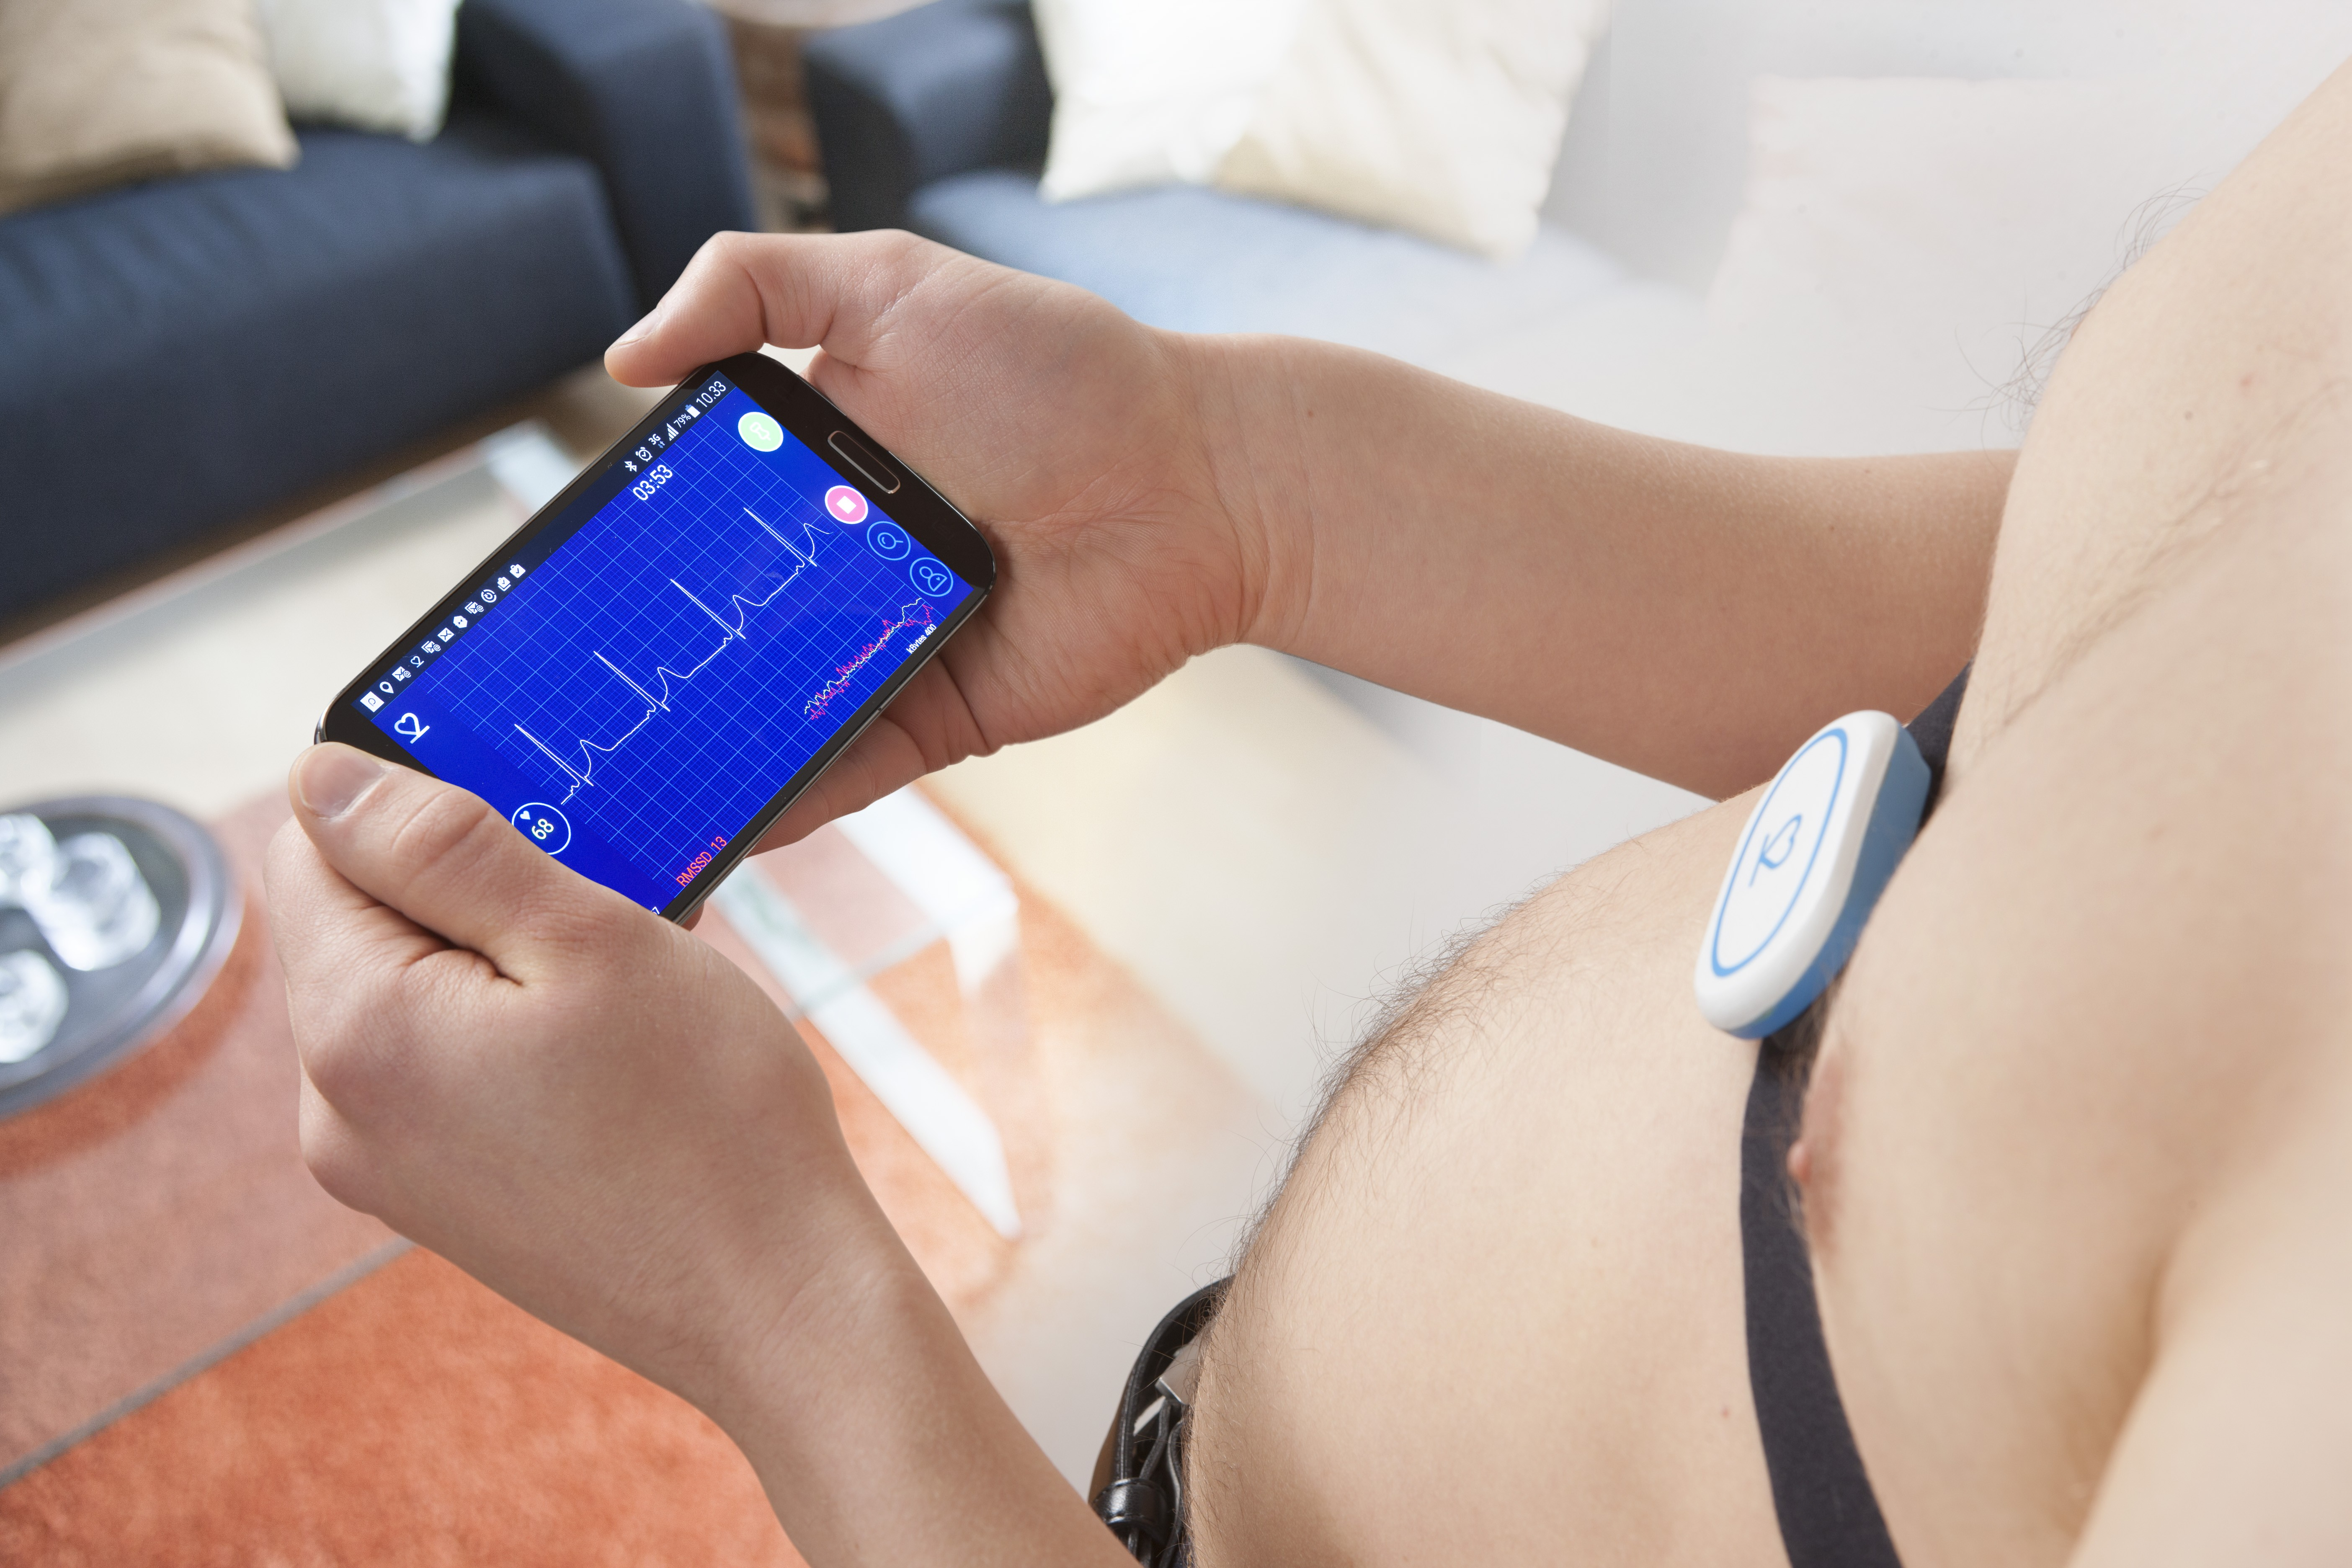 The app allows marking of specific sections of the heart curve when feeling arrhythmias and even record voice comments to facilitate later analyses of the information.